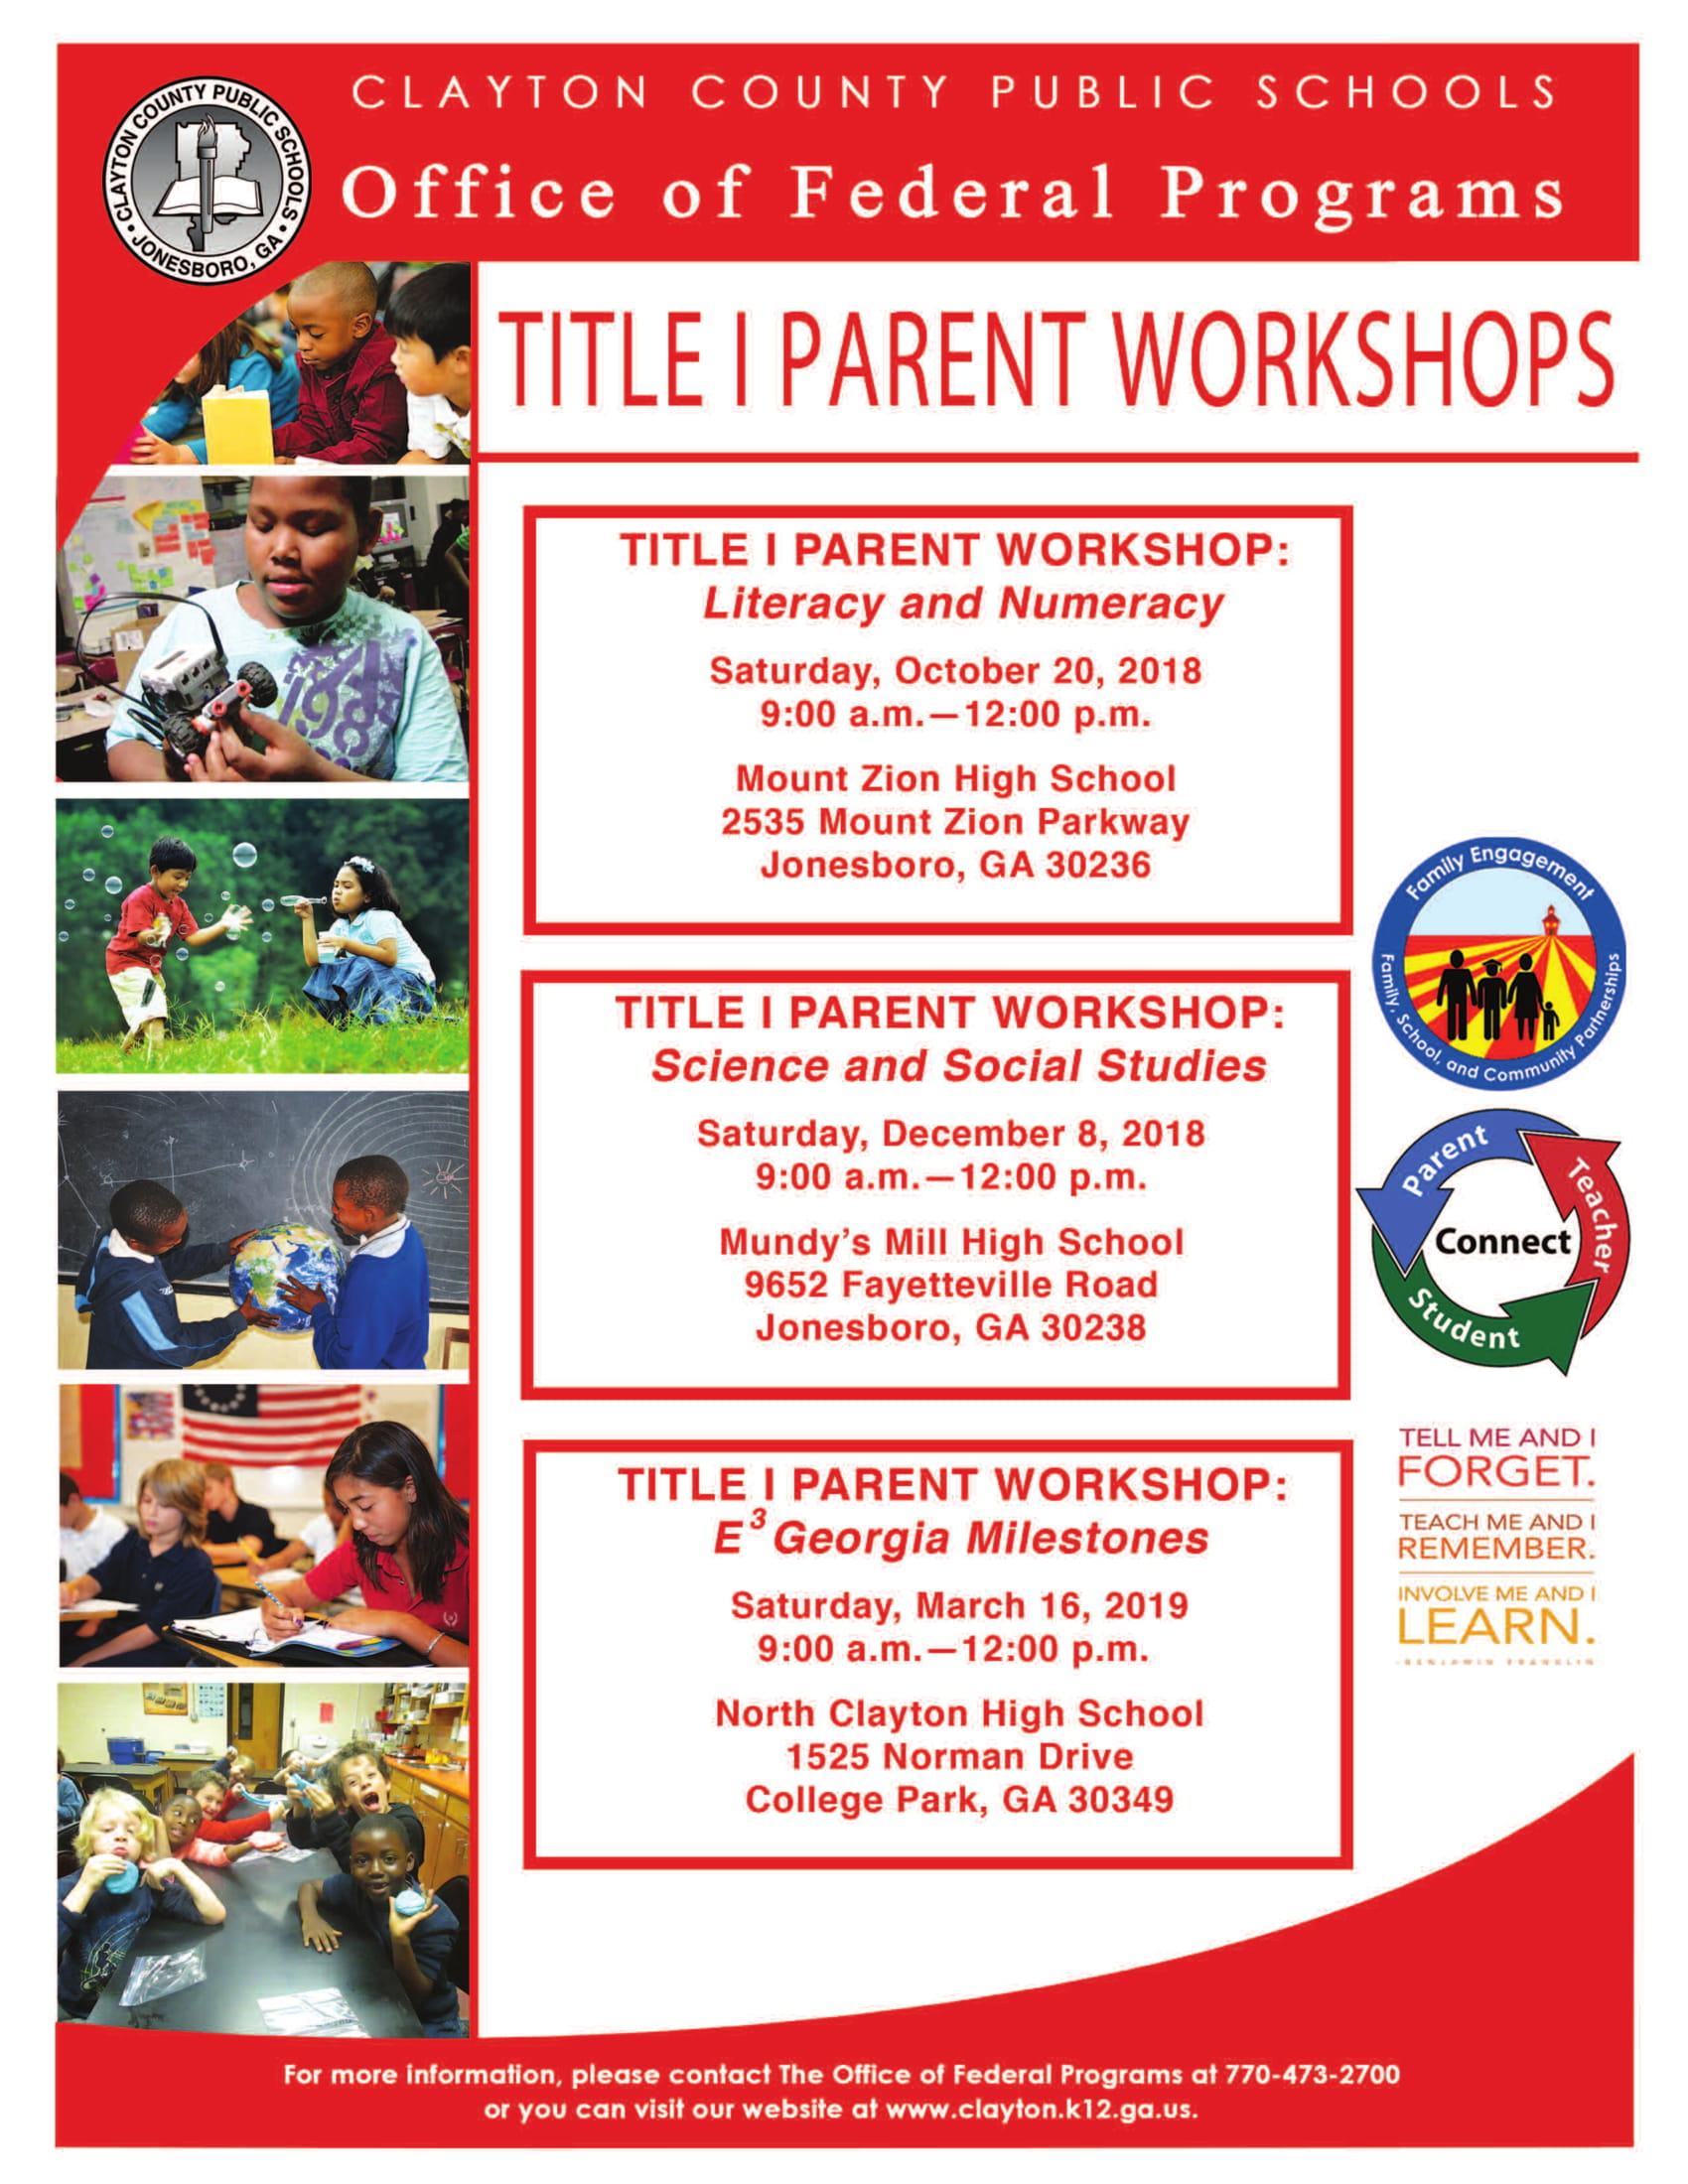 Title I Parent Workshops